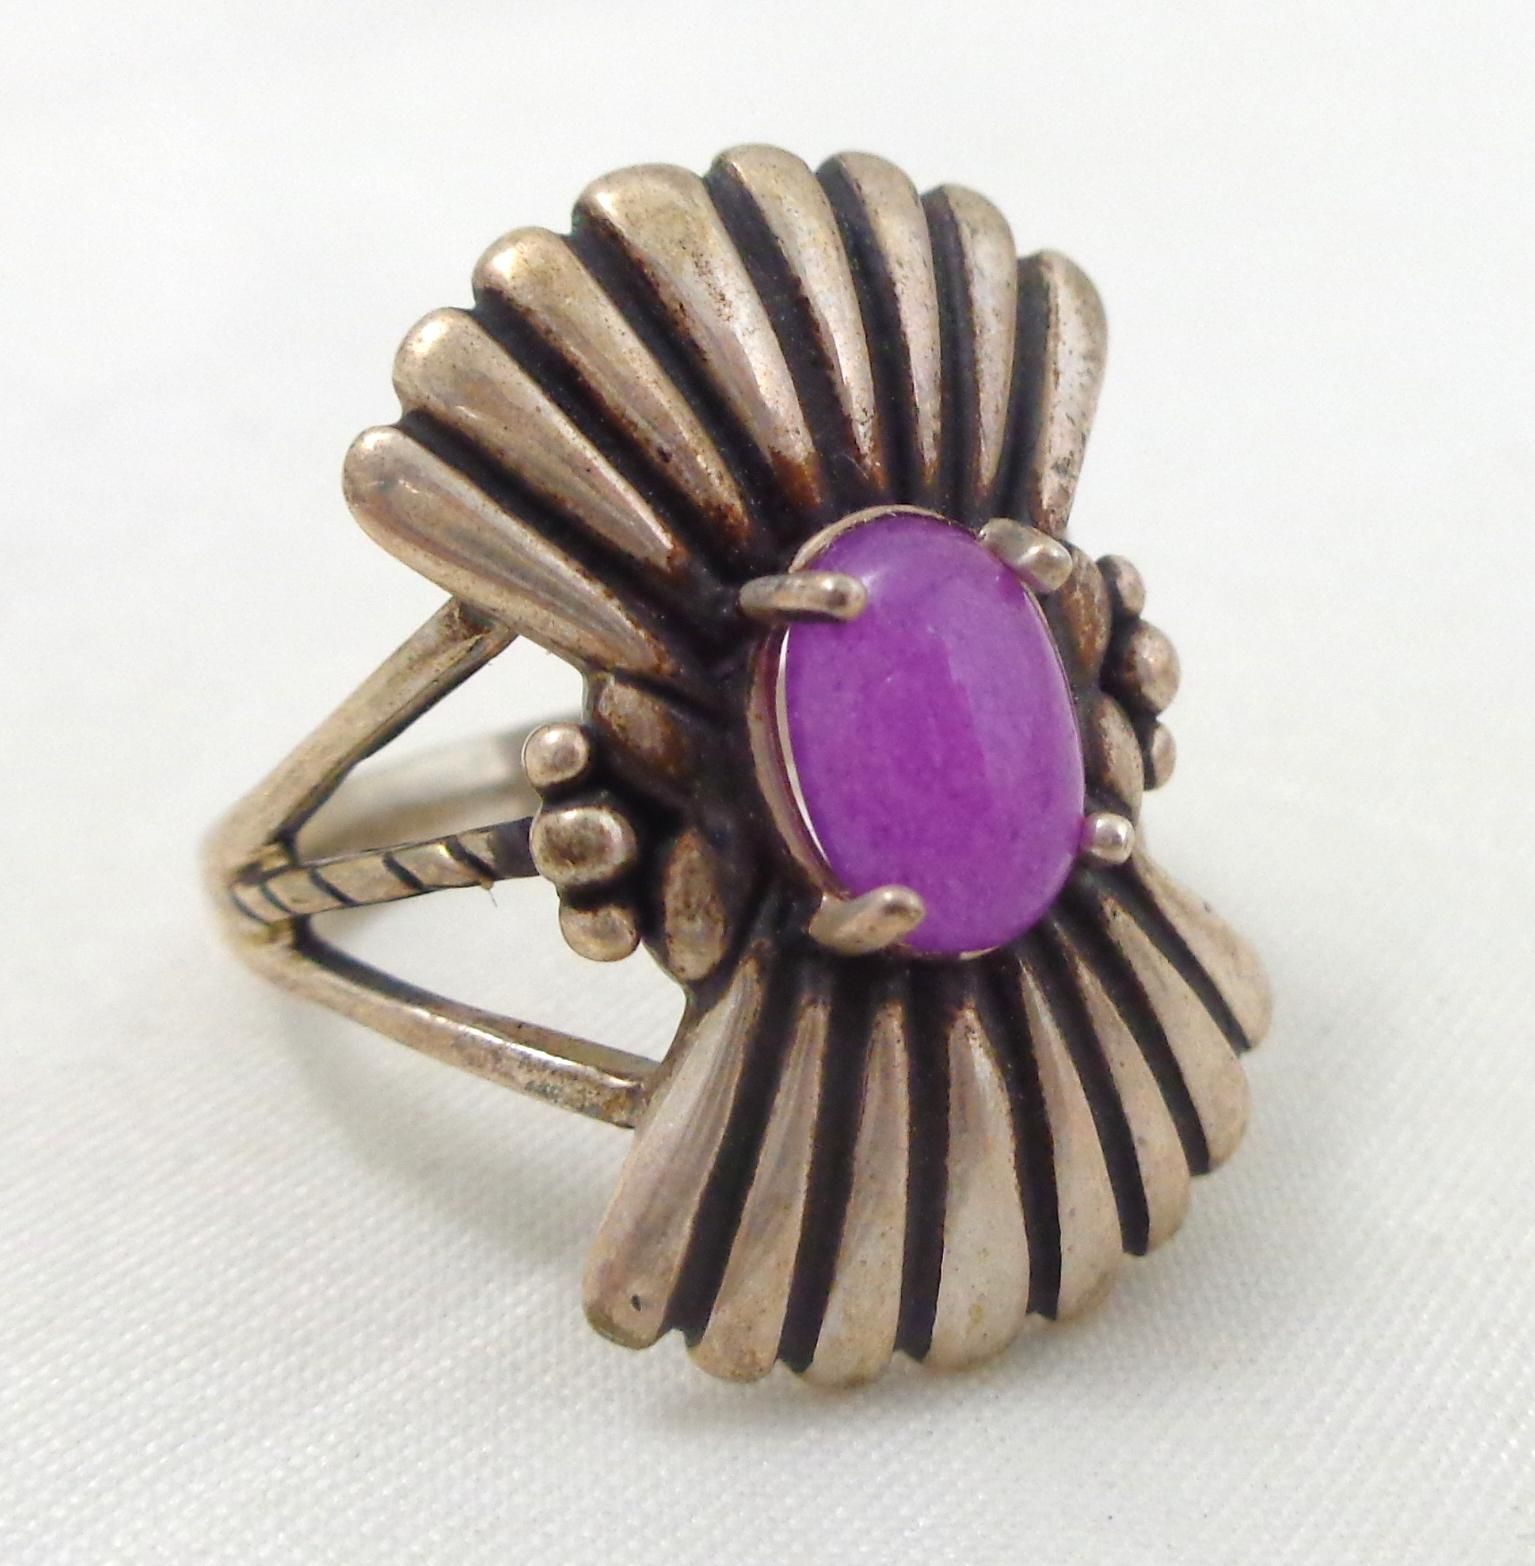 Estate Sterling Silver Purple Stone Ring Sz 8 from riverroadcollectibles on Ruby Lane